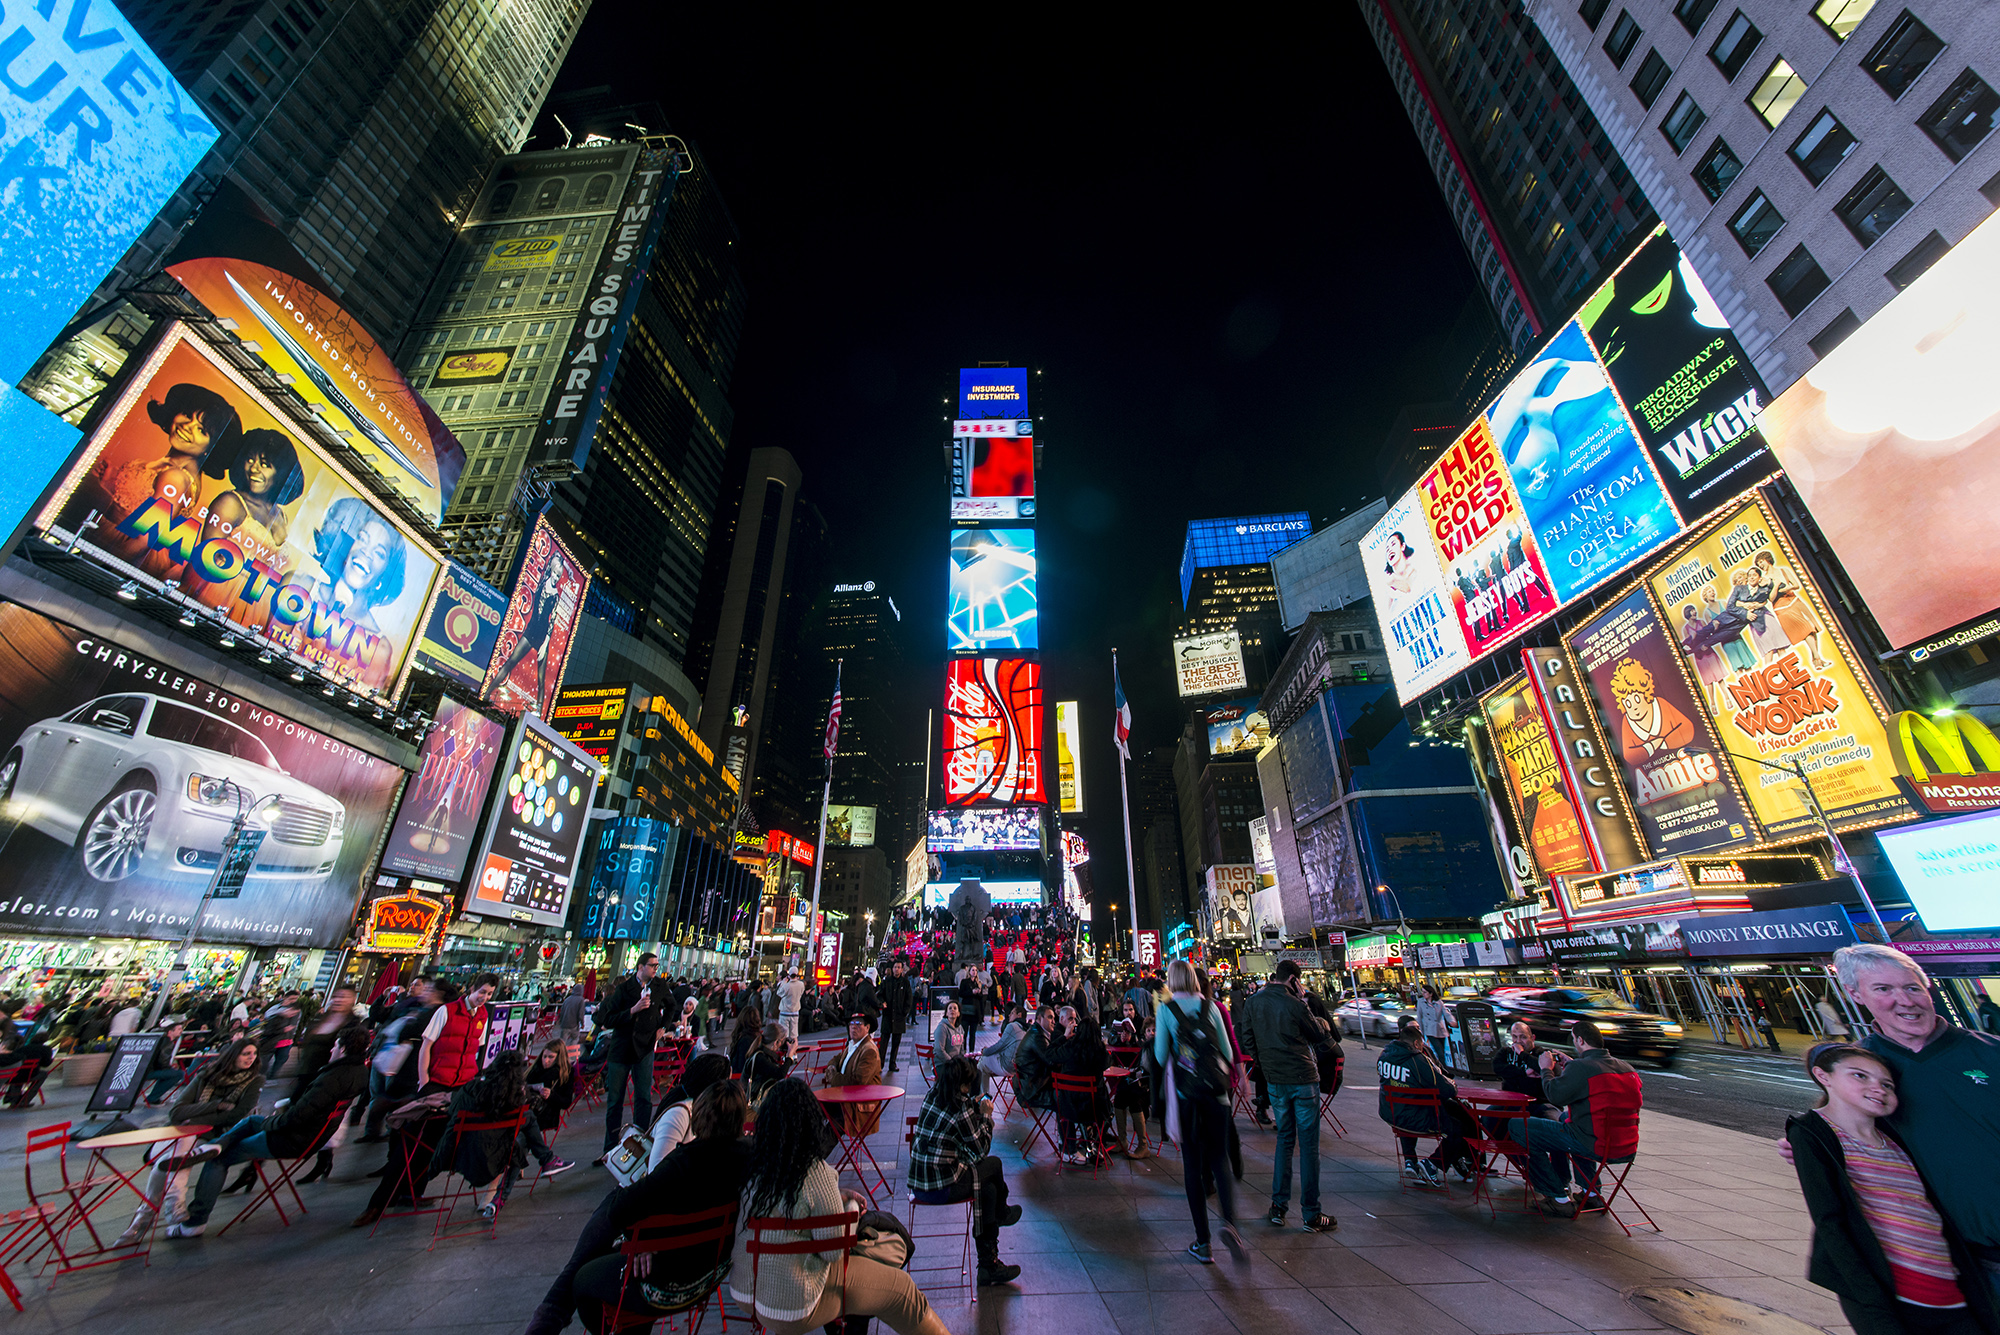 lively times square with large buildings, bright lights, and people sitting and walking